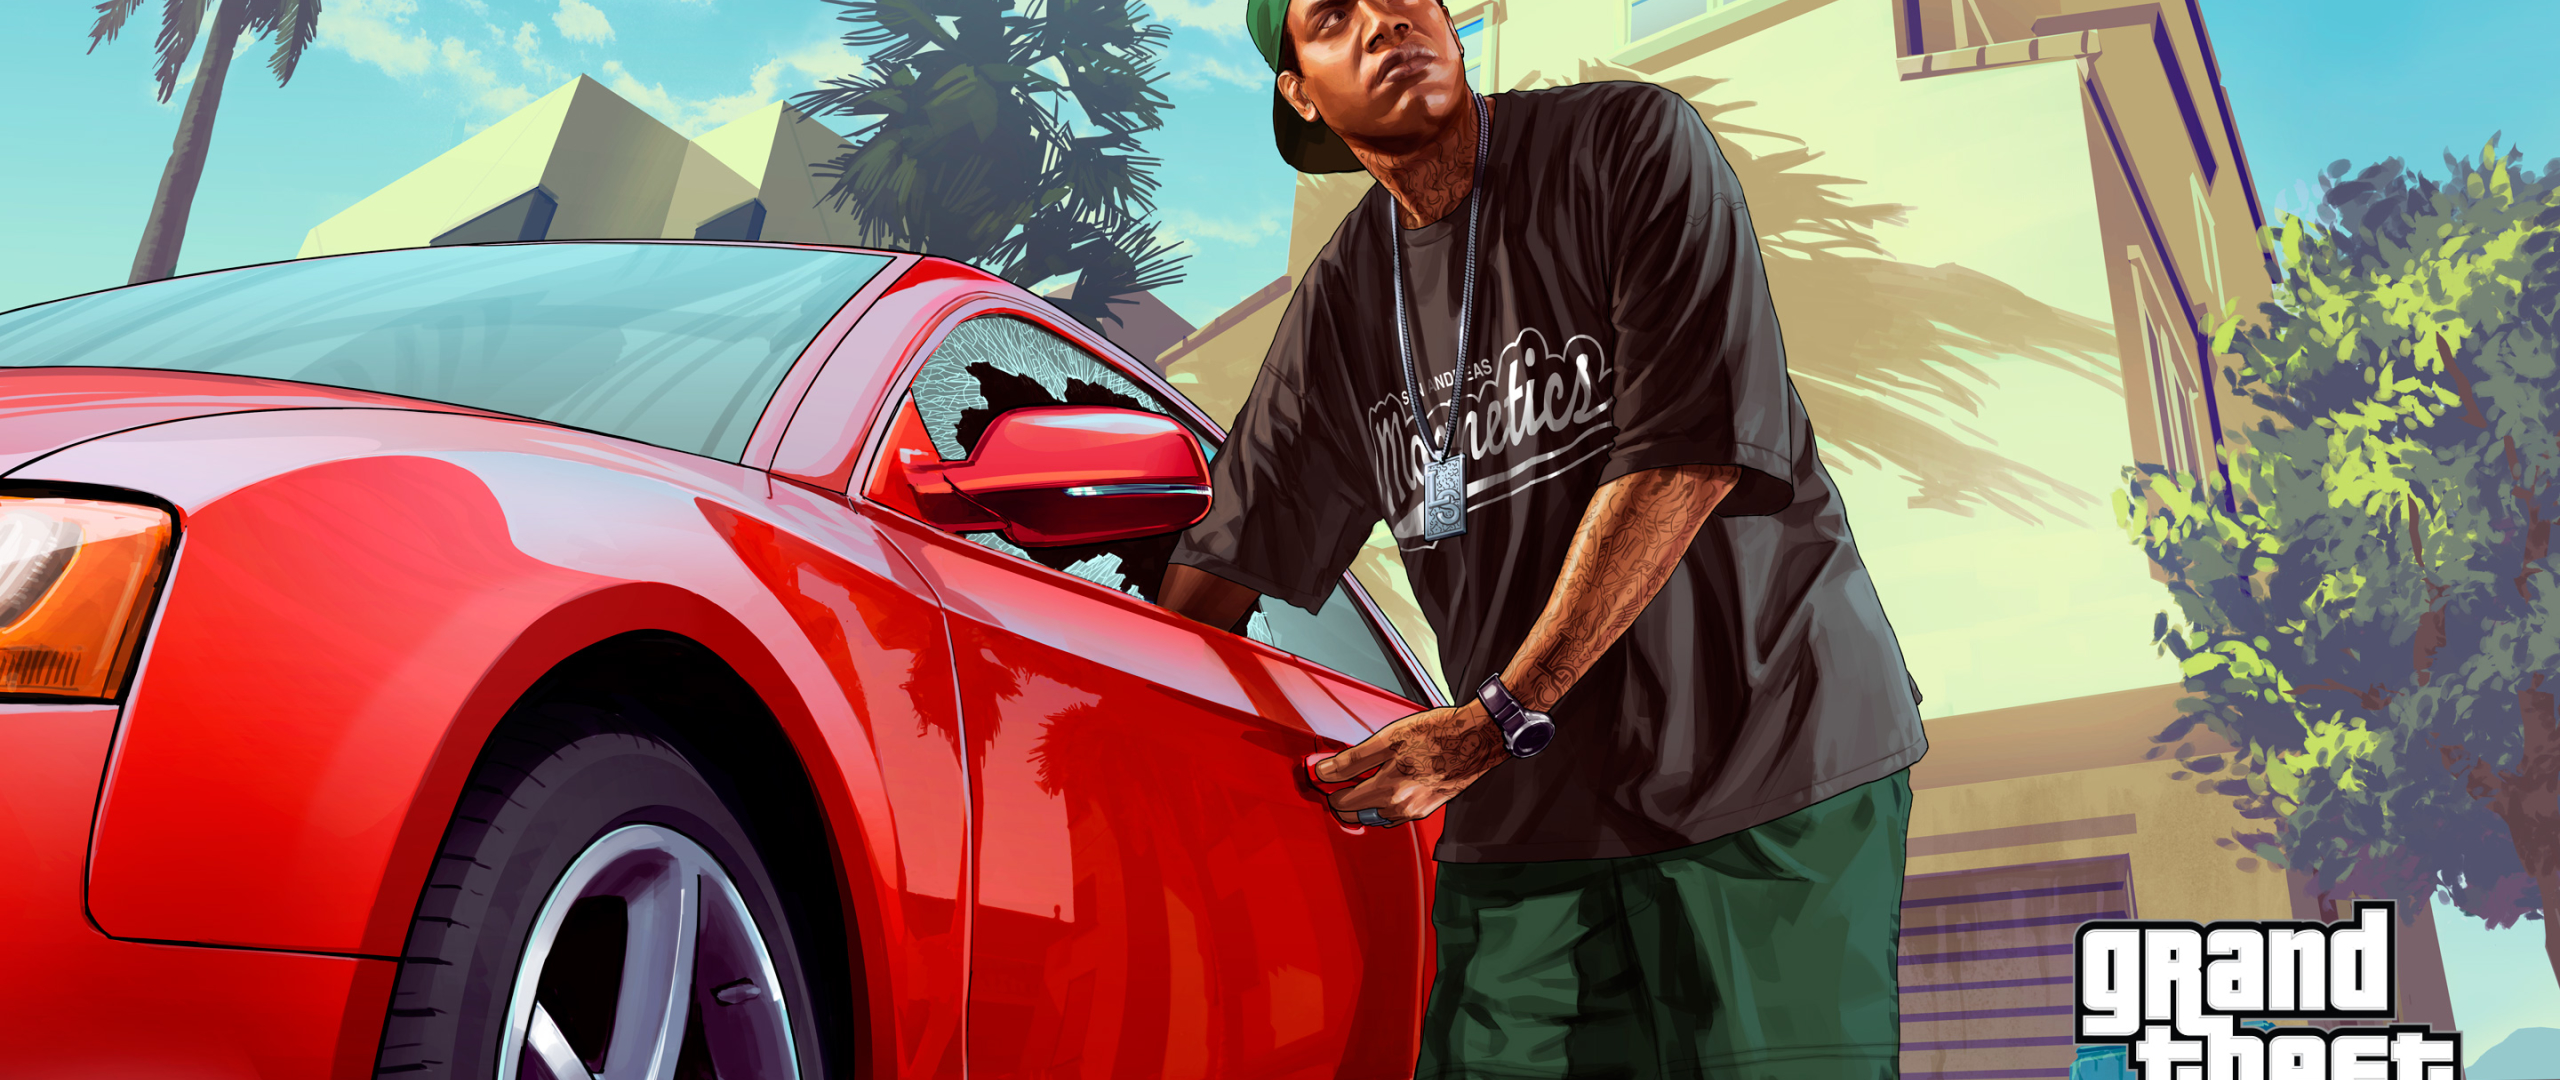 Gta wallpapers san andreas 4